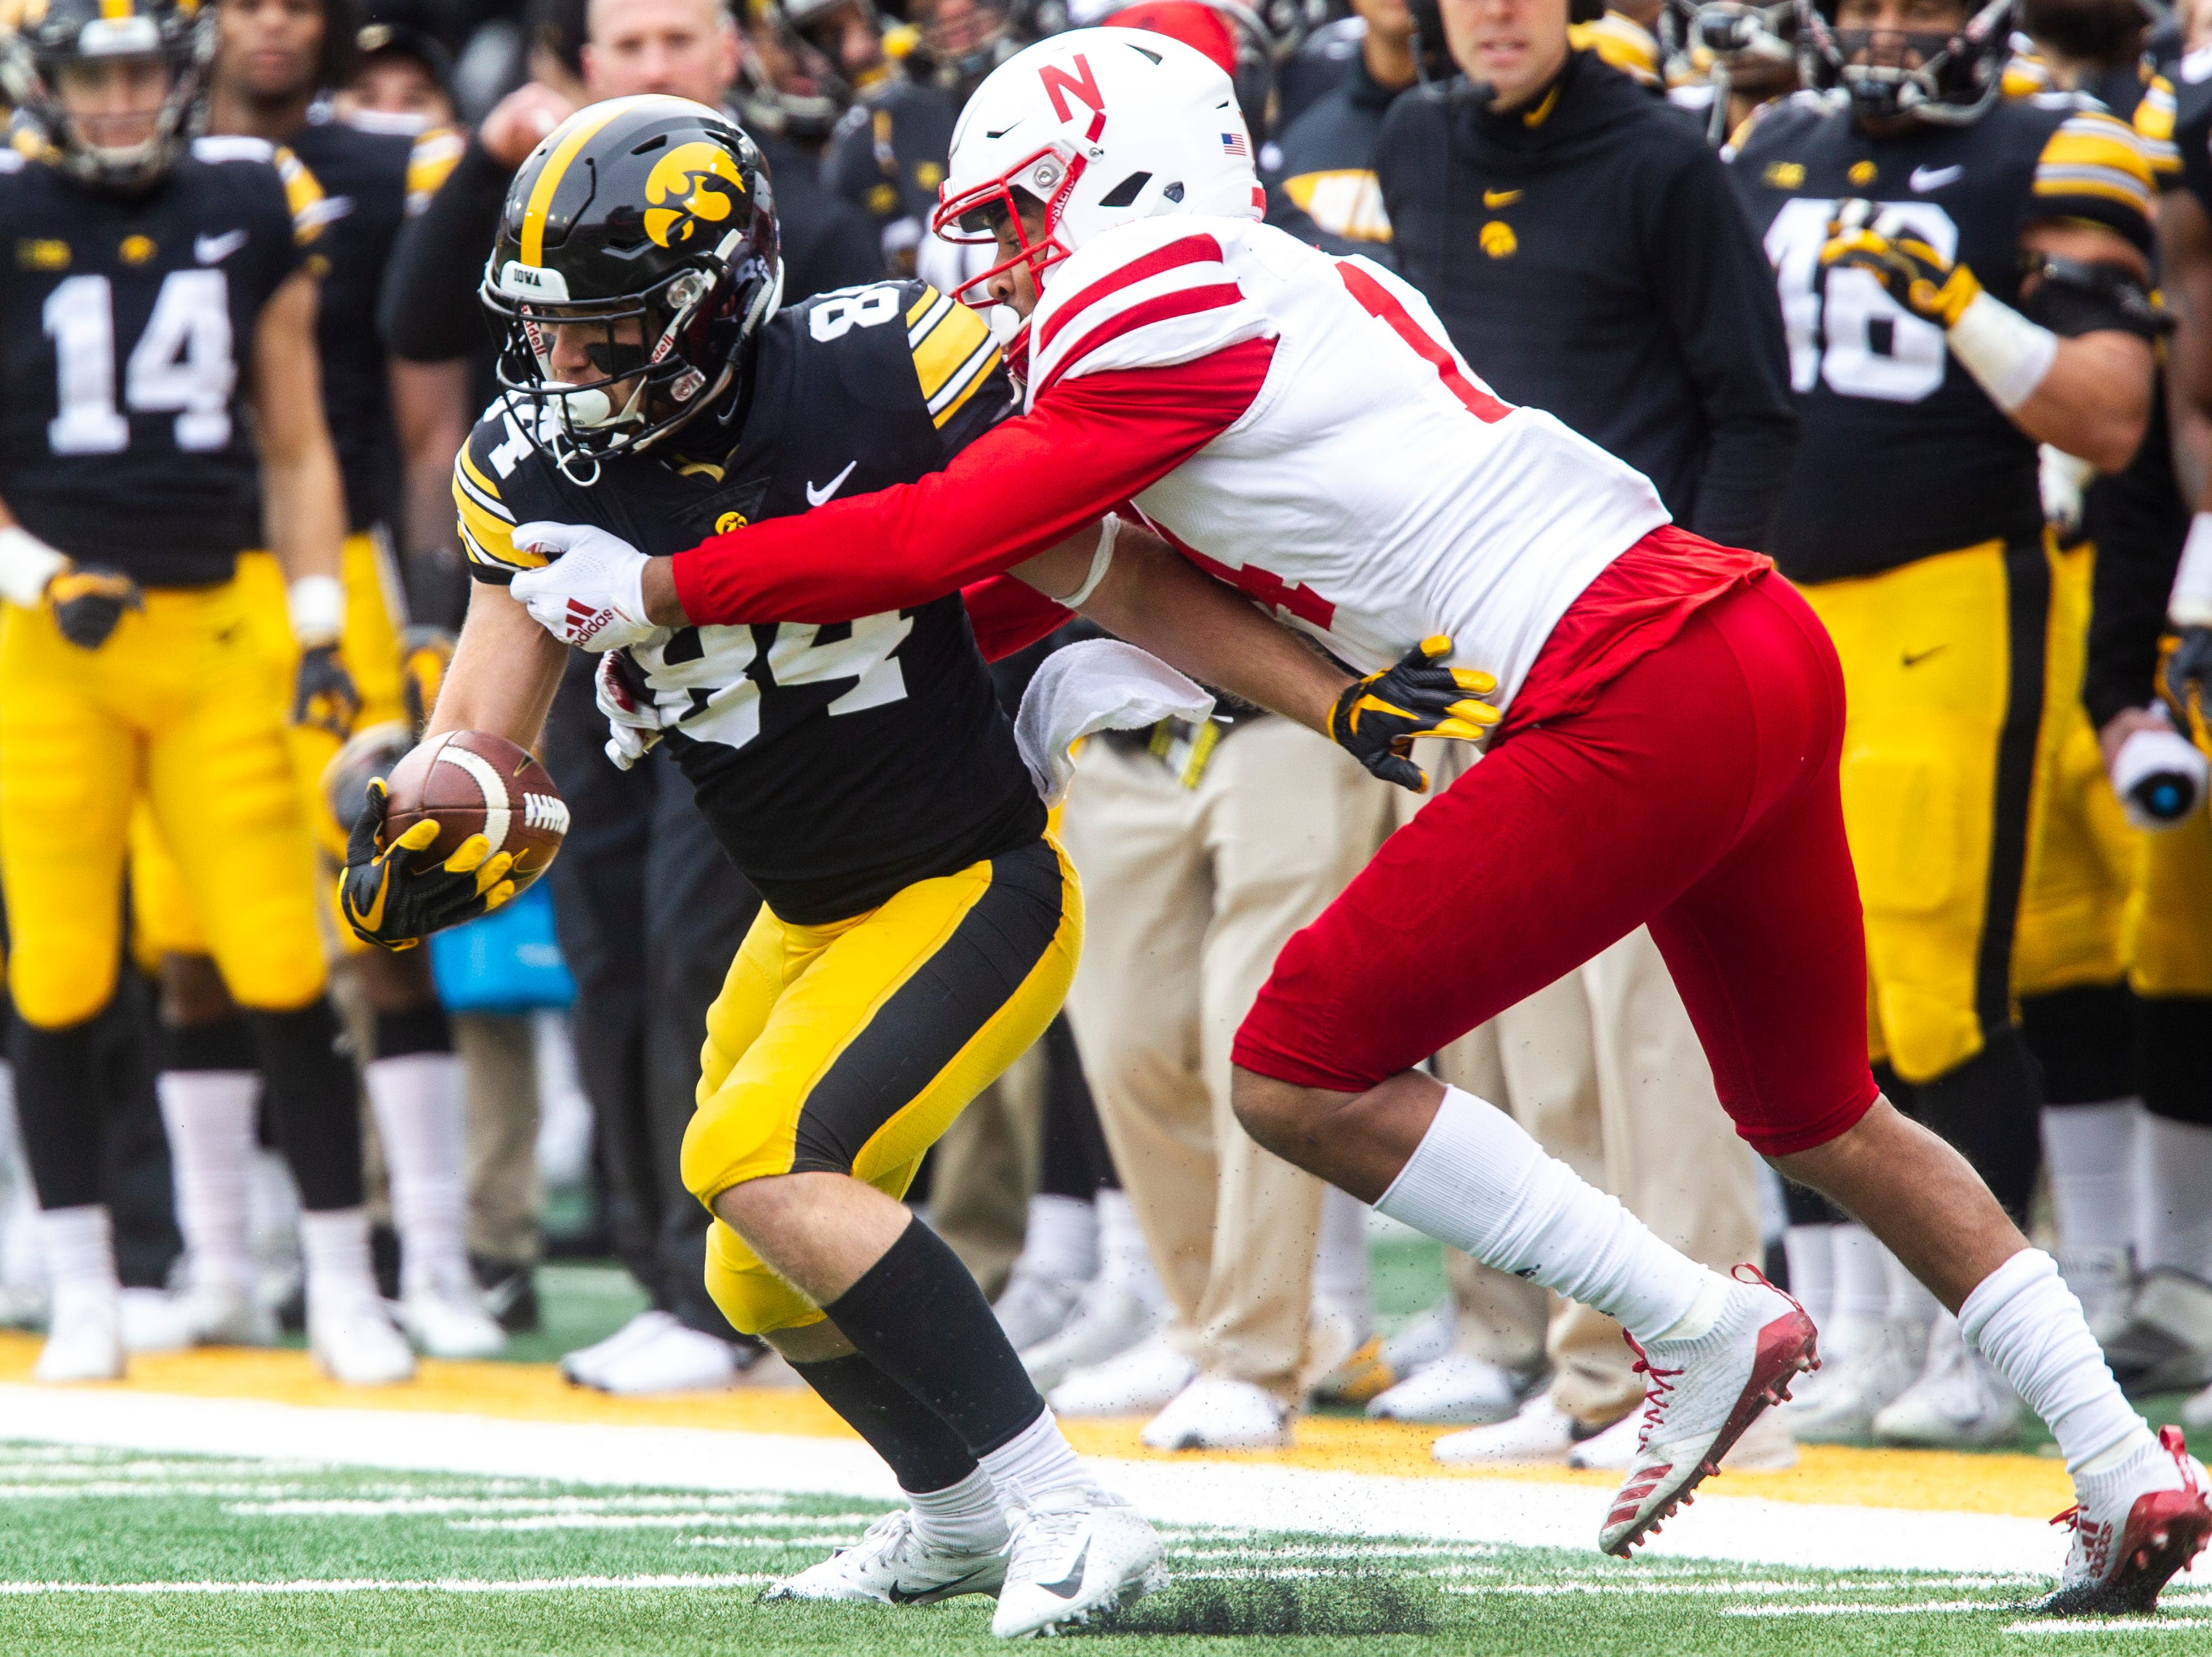 Iowa wide receiver Nick Easley (84) gets tackled by Nebraska's Tre Neal (14) during a Big Ten Conference NCAA football game on Friday, Nov. 23, 2018, at Kinnick Stadium in Iowa City.